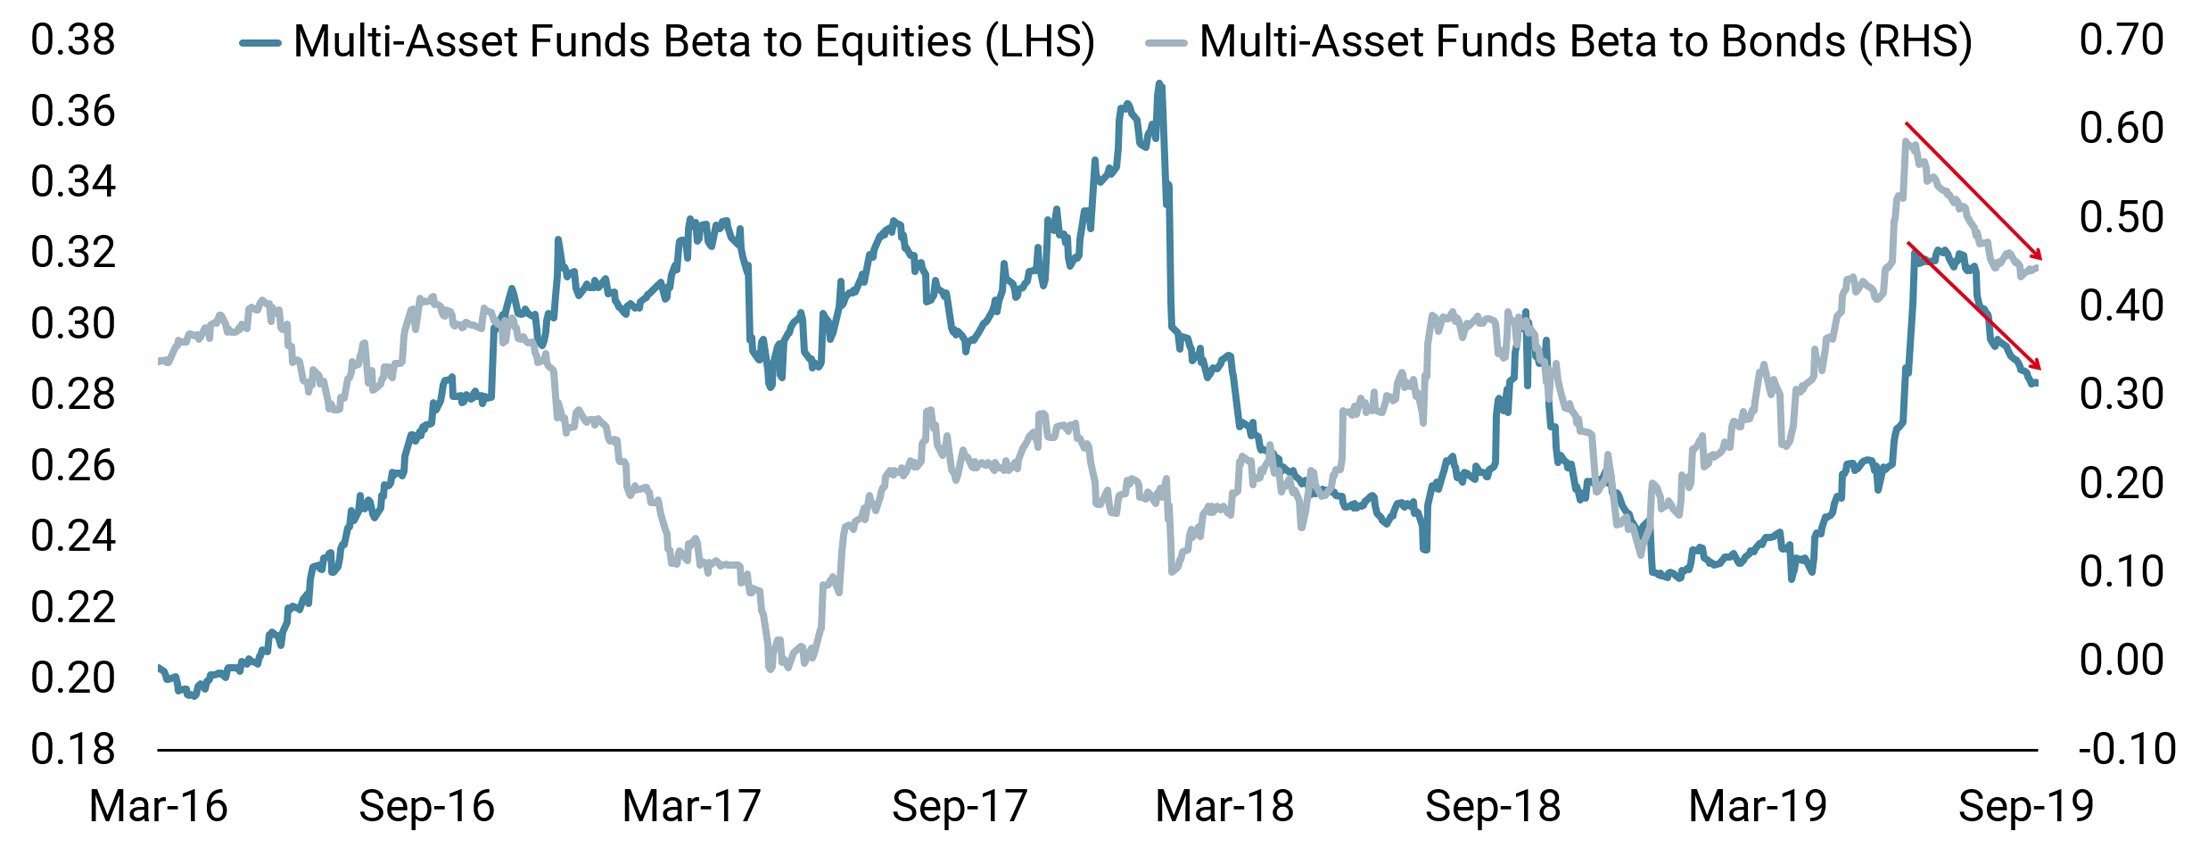 Figure 5: Multi Asset Fund Beta to Equities and Bonds